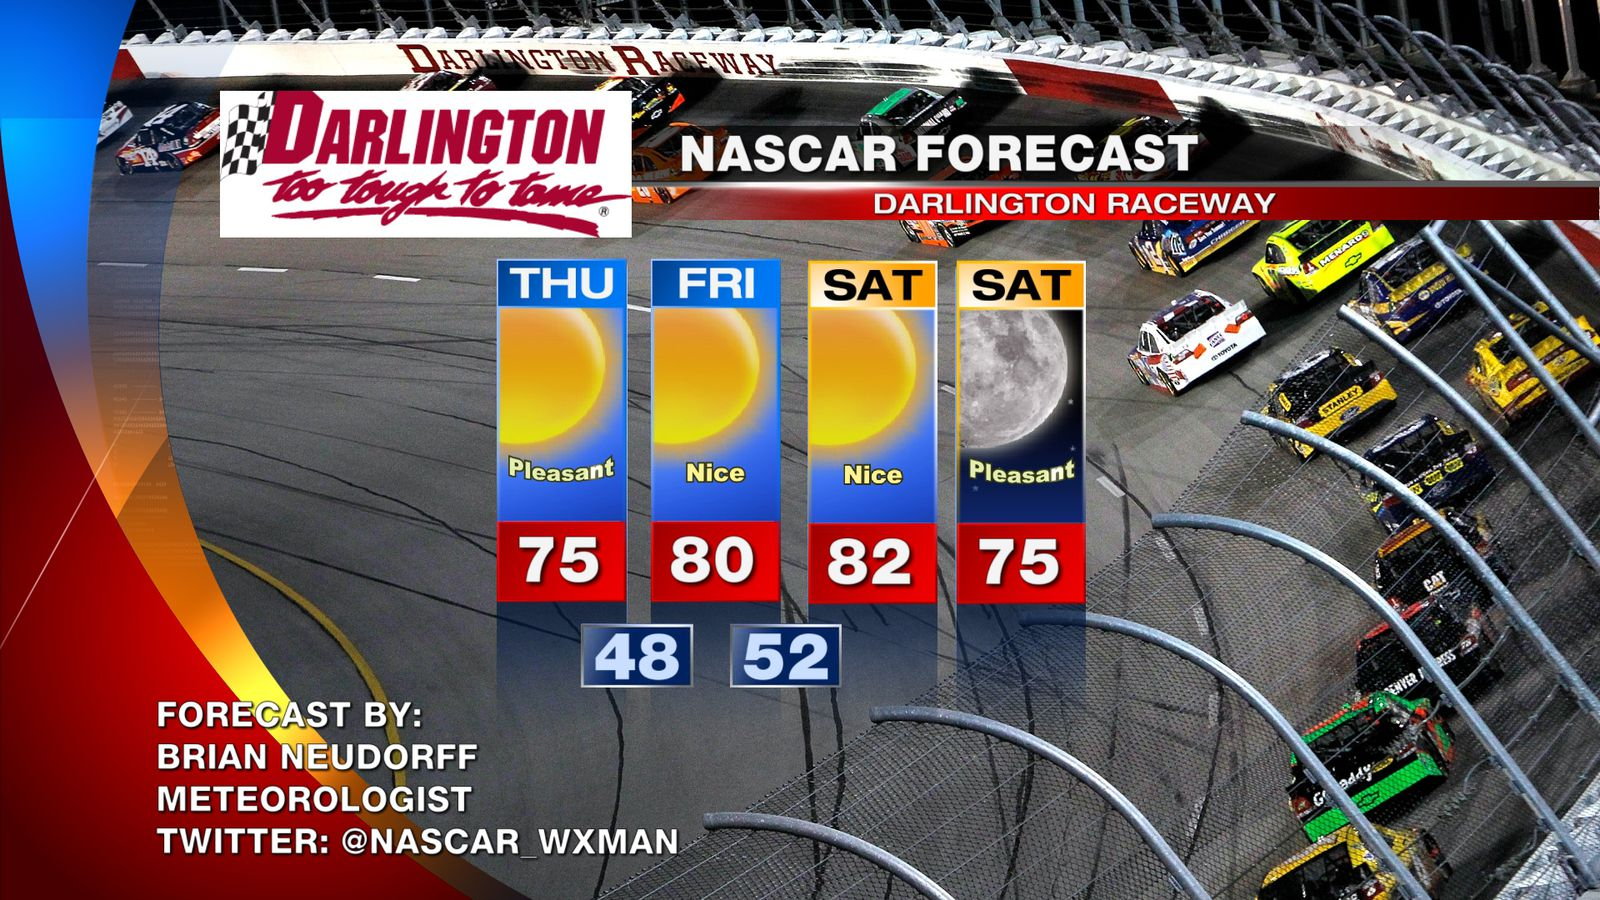 nascar darlington raceway 2014 weather forecast  no rain